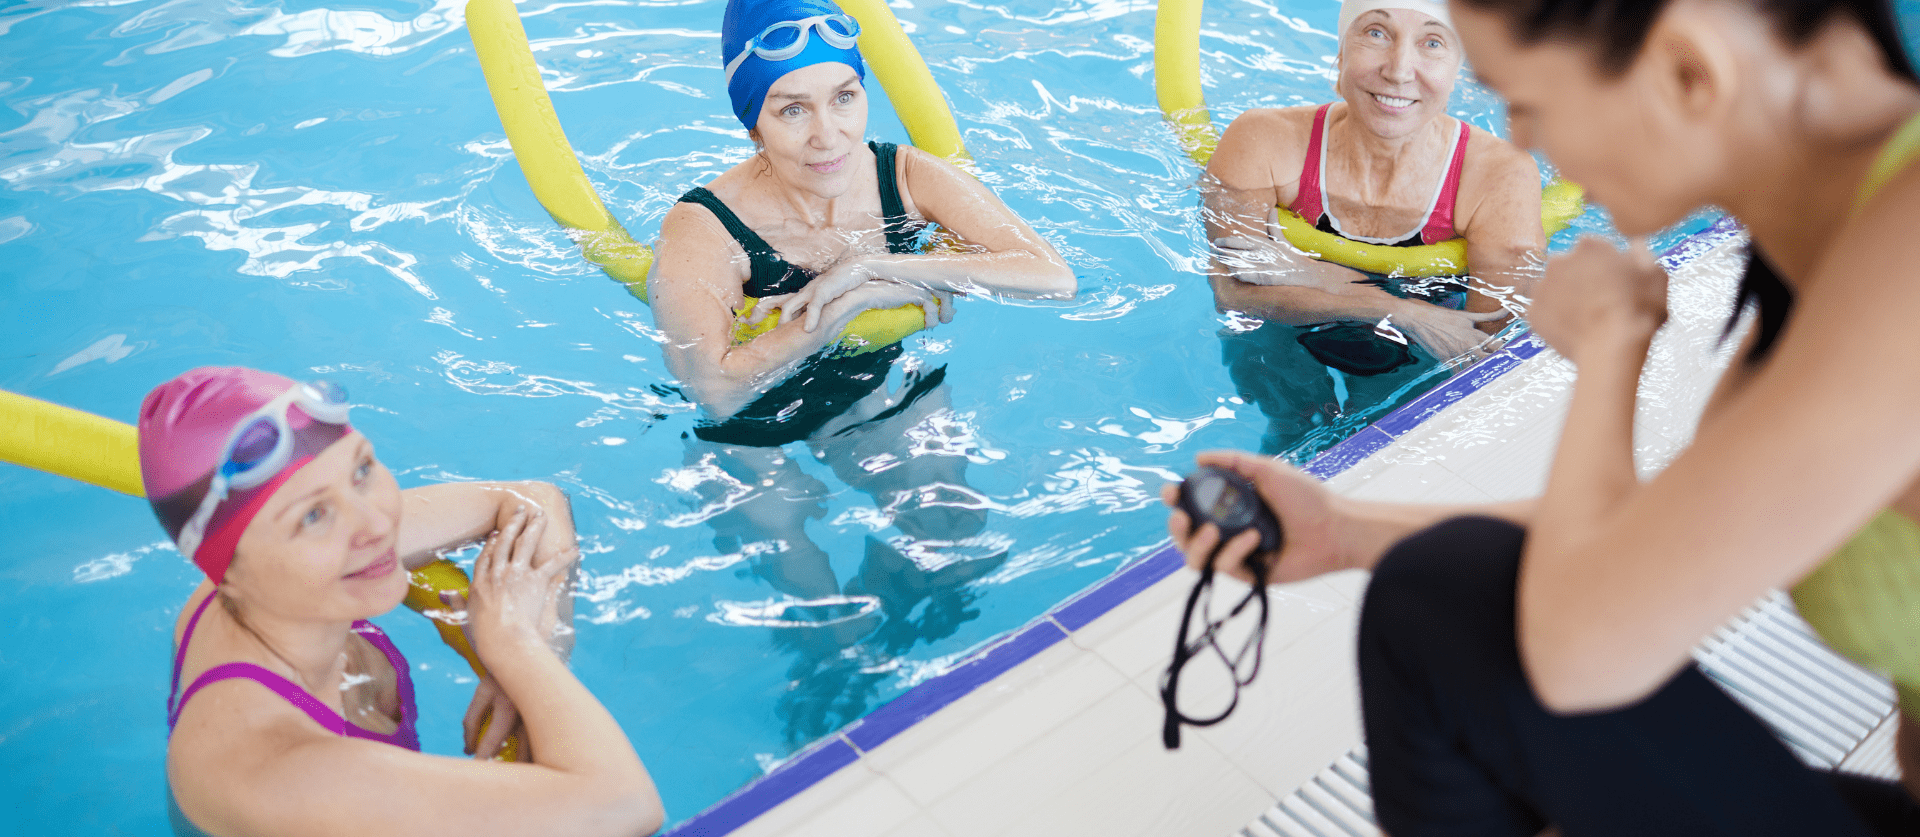 4 Ways to Boost Registrations for Your Aquatic Programs